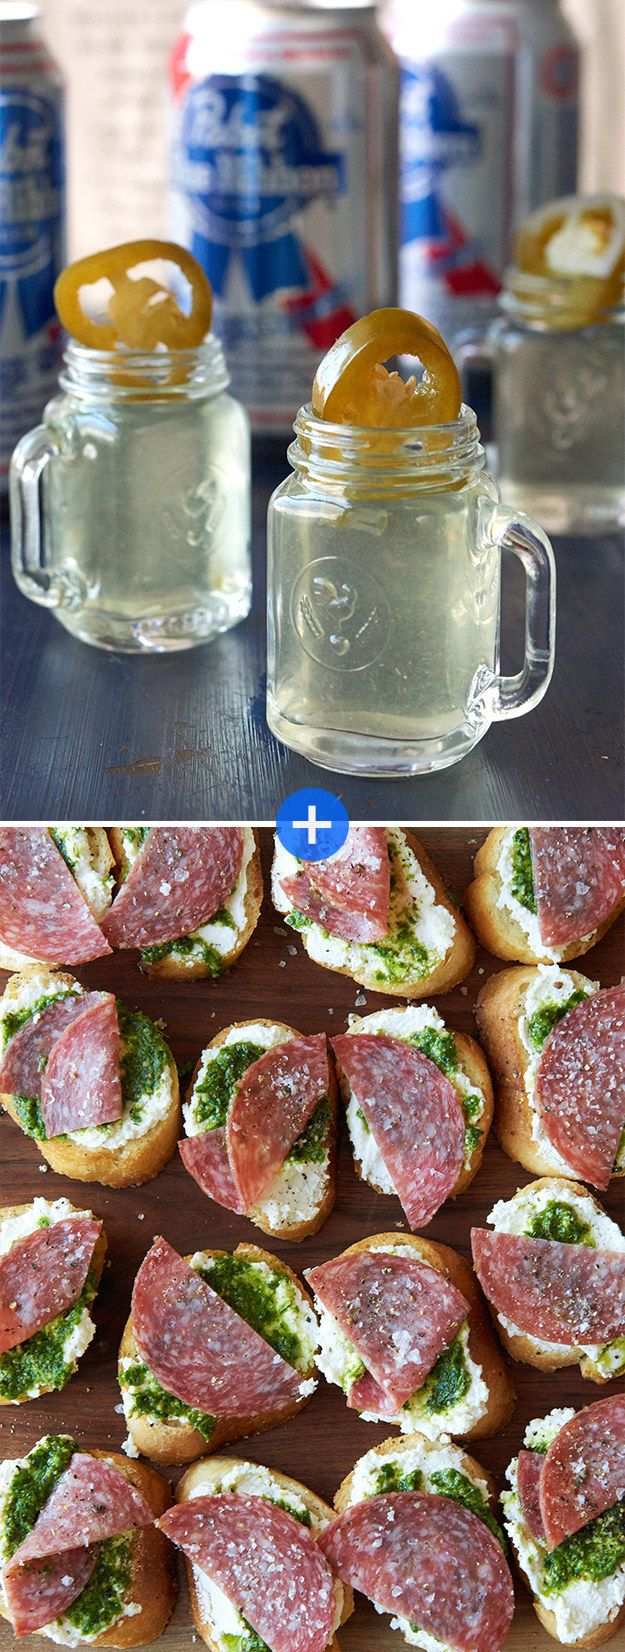 Salami Toasts + Jalapeño Picklebacks